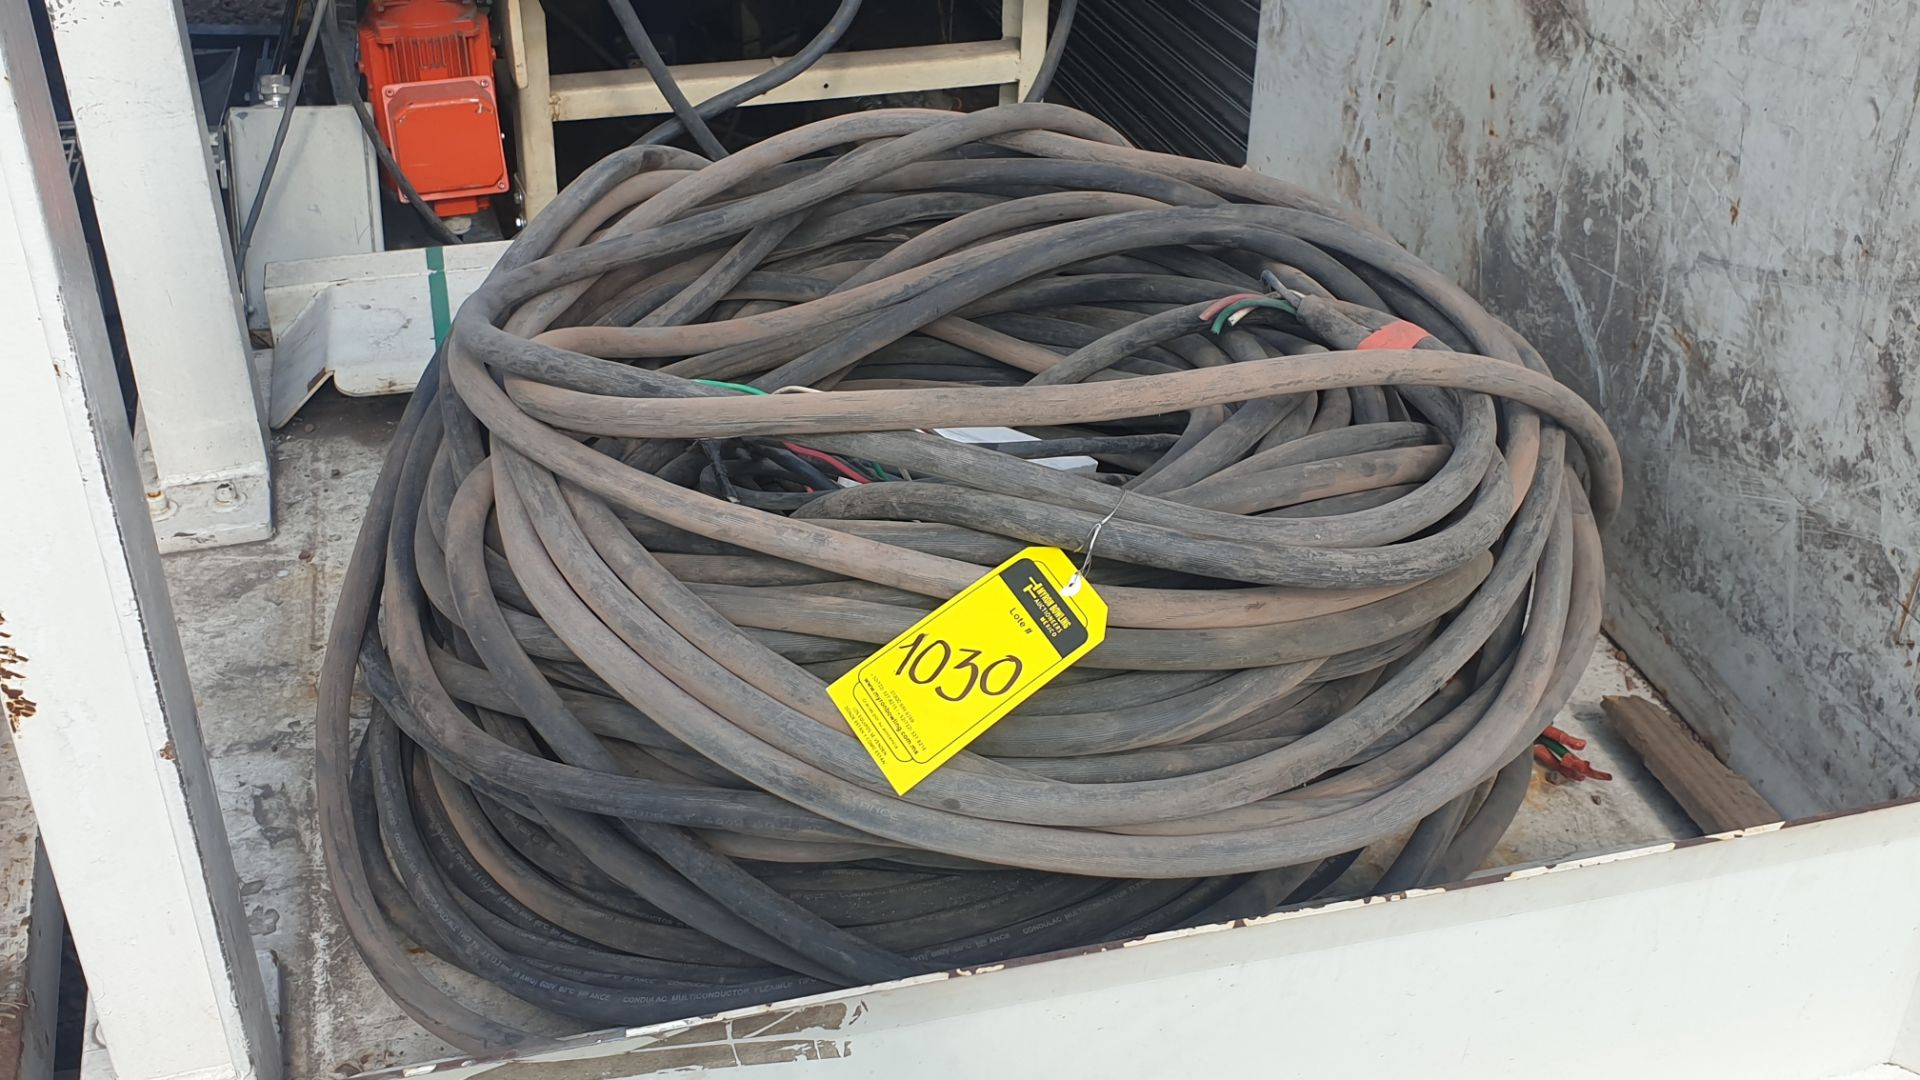 Lot of cable for high tension of 3 lines different gauge 80 mts approximately - Image 5 of 6